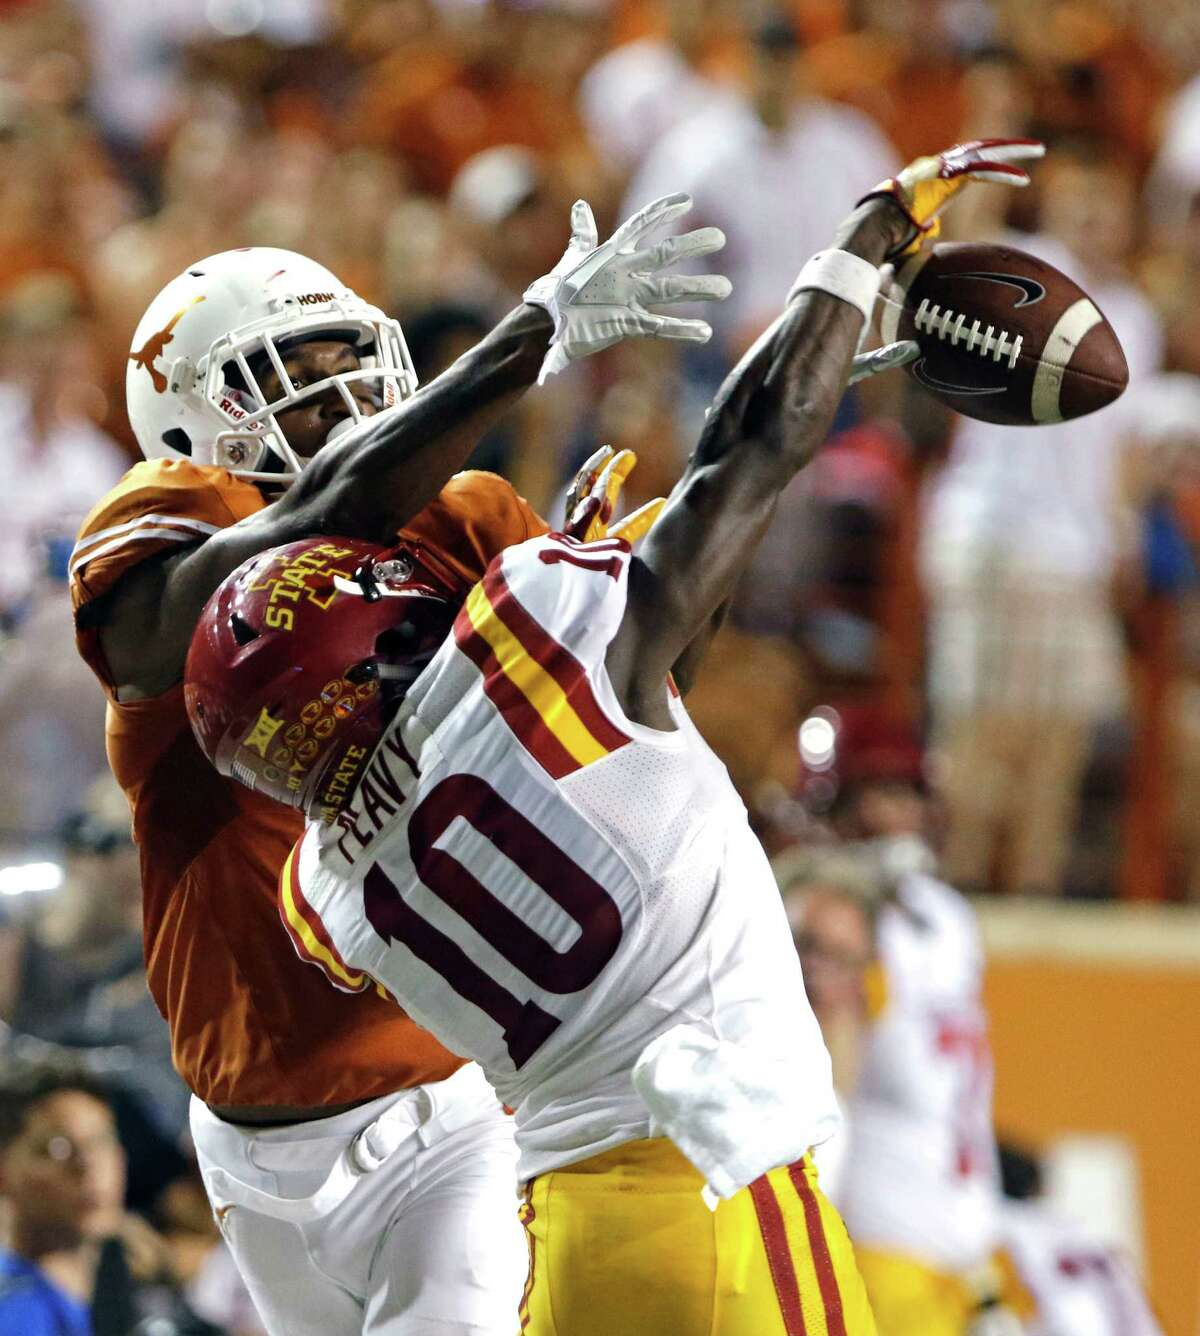 Texas receiver John Burt, left, goes up for a pass while defended by Iowa State's Brian Peavy, right, during the second half of an NCAA college football game, Saturday, Oct. 15, 2016, in Austin, Texas. (AP Photo/Michael Thomas)